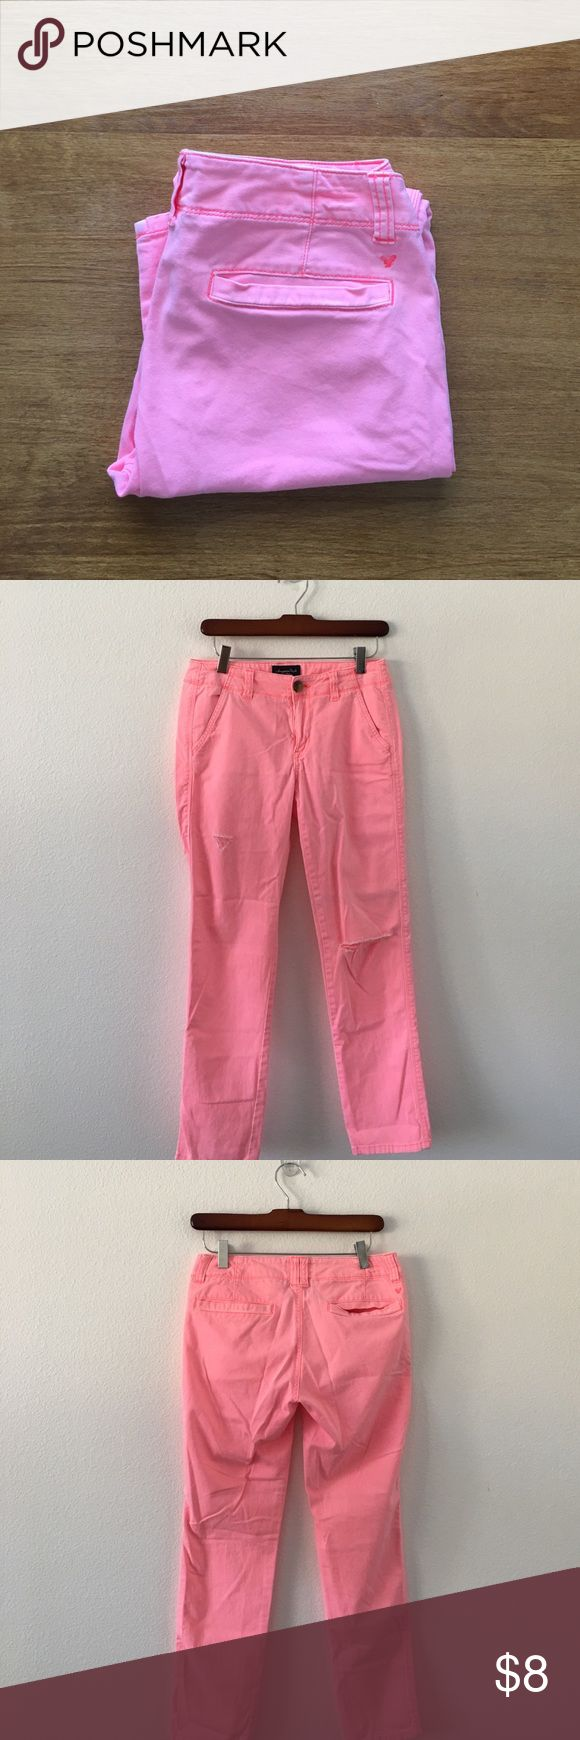 Peach American Eagle Outfitter Stretch Chino Light peach colored 90% cotton 2% spandex distressed she knows with orange stitching. Waist measures 14 inches flat across the front. 8 inch rise, 27.5 inches in length. American Eagle Outfitters Pants Trousers